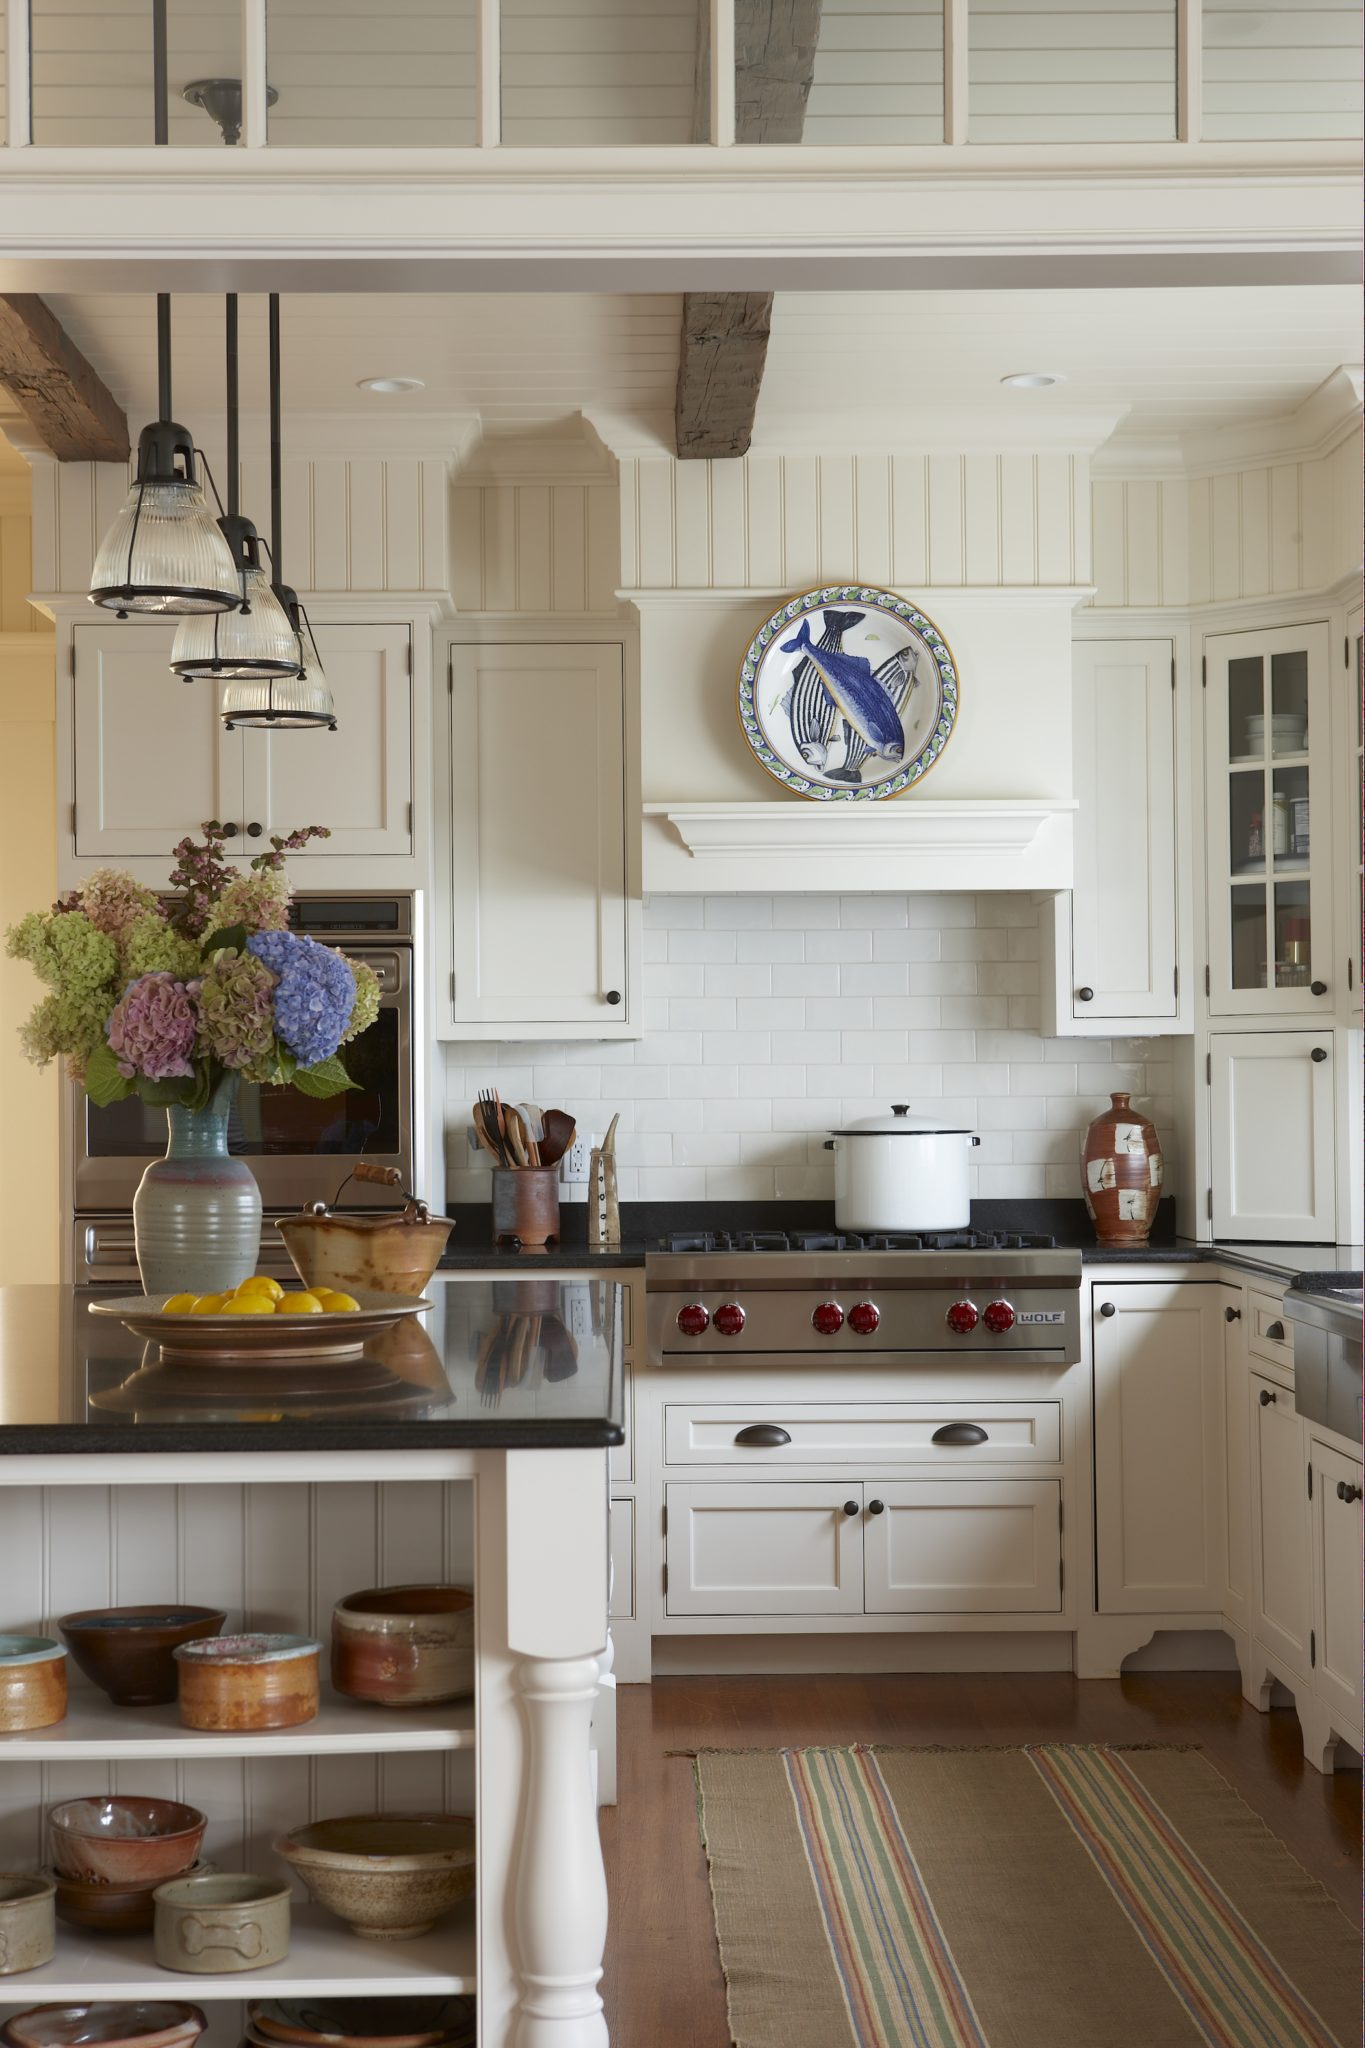 A timeless kitchen gives a country feel by adding pottery and a striped textured rug. By Gil Walsh Interiors